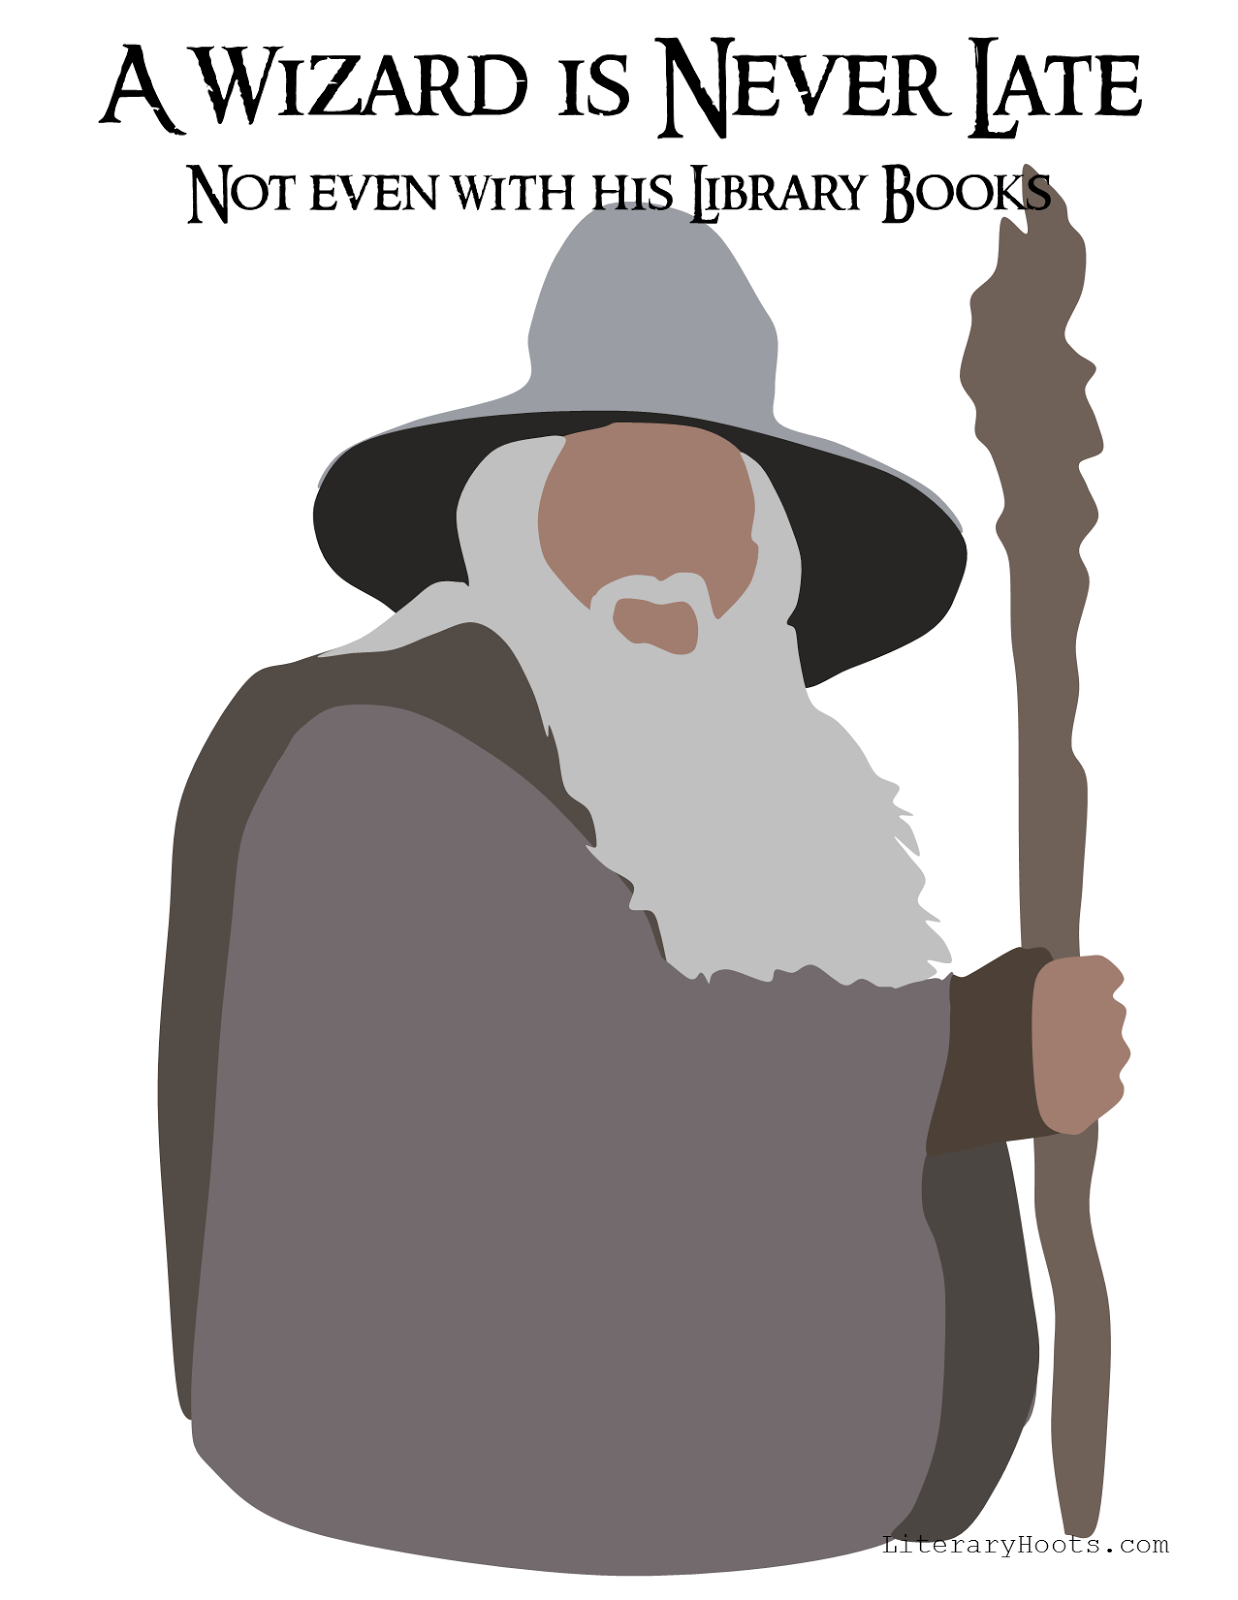 Gandolf Book return